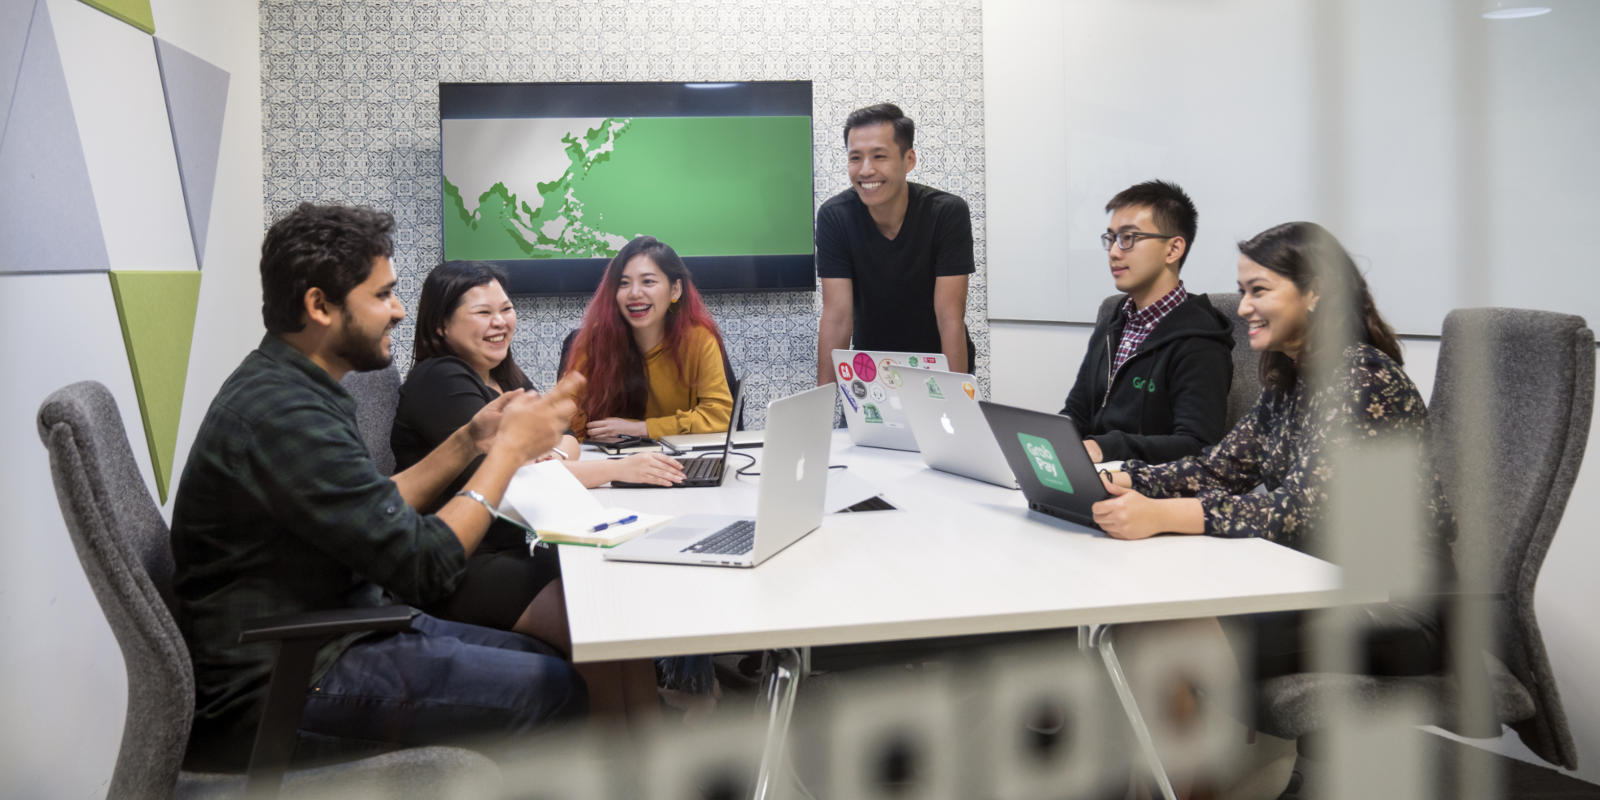 Grab Careers - Working For A Better Southeast Asia